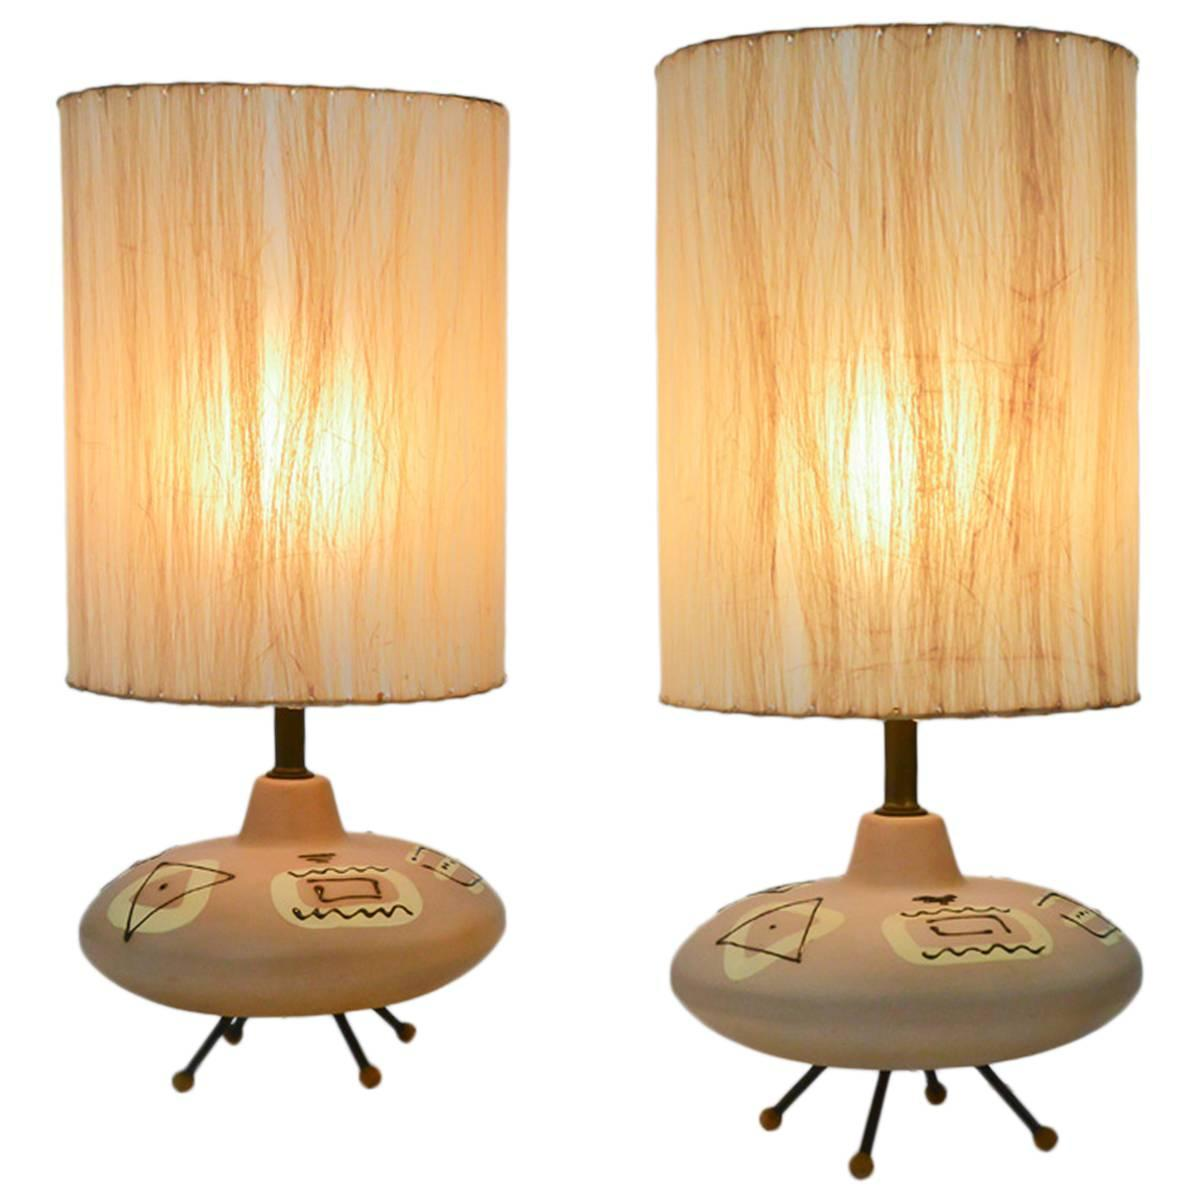 Unique lamps for sale - Unique Lamps For Sale Unique Pair Of 1950s Ceramic Table Lamps For Sale At 1stdibs